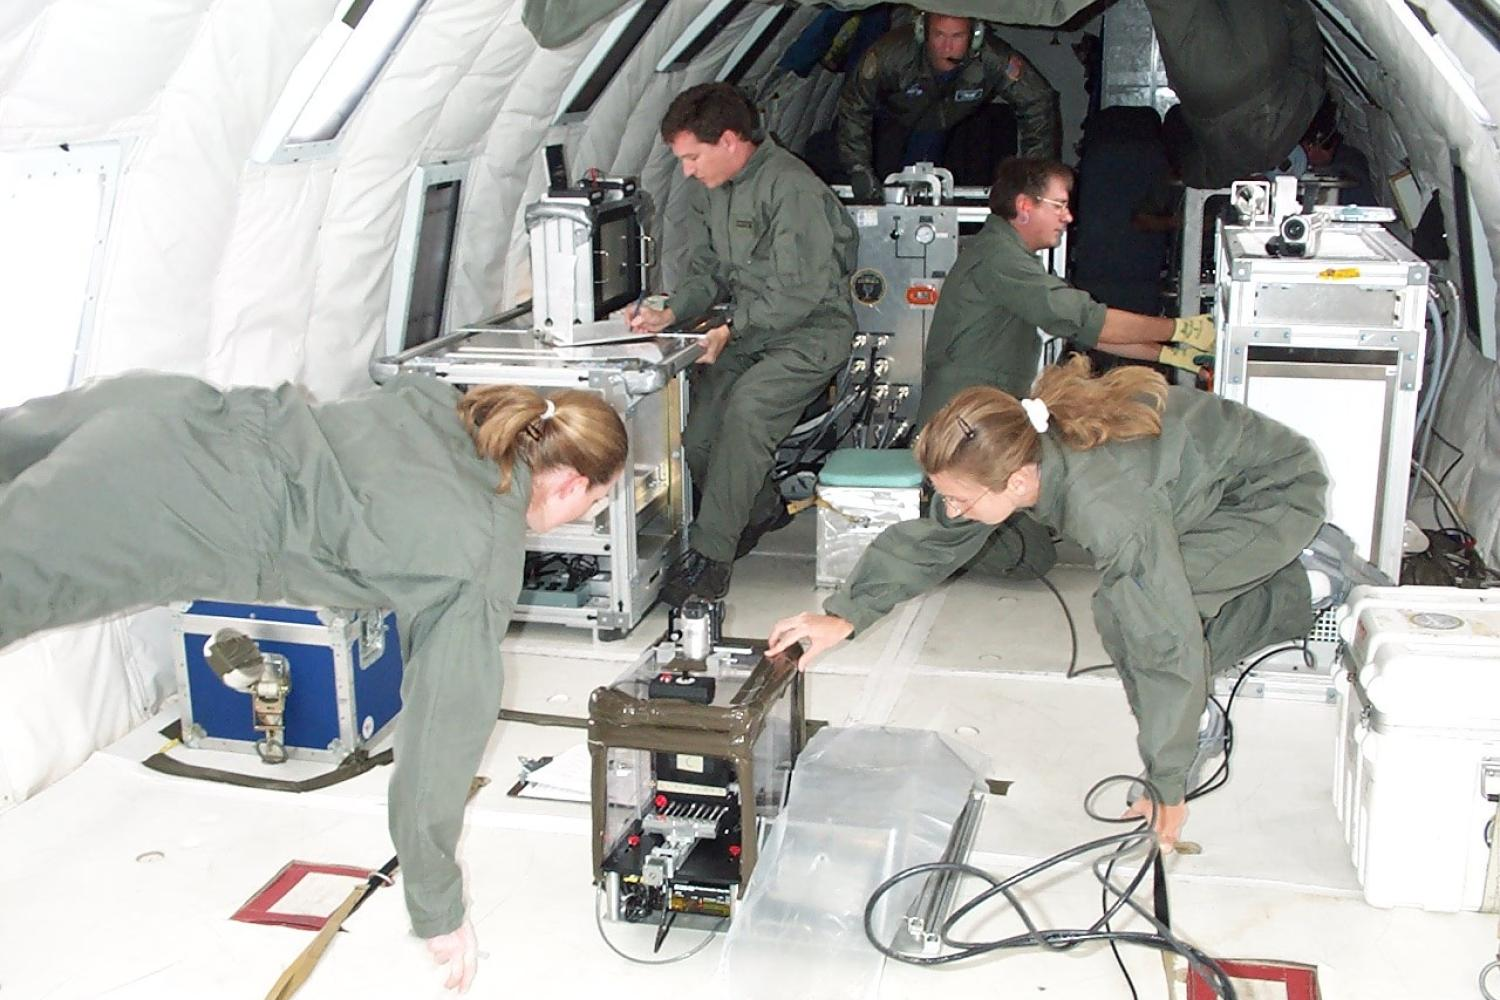 Instrument shop designs tested at zero gravity in a high altitude plane.